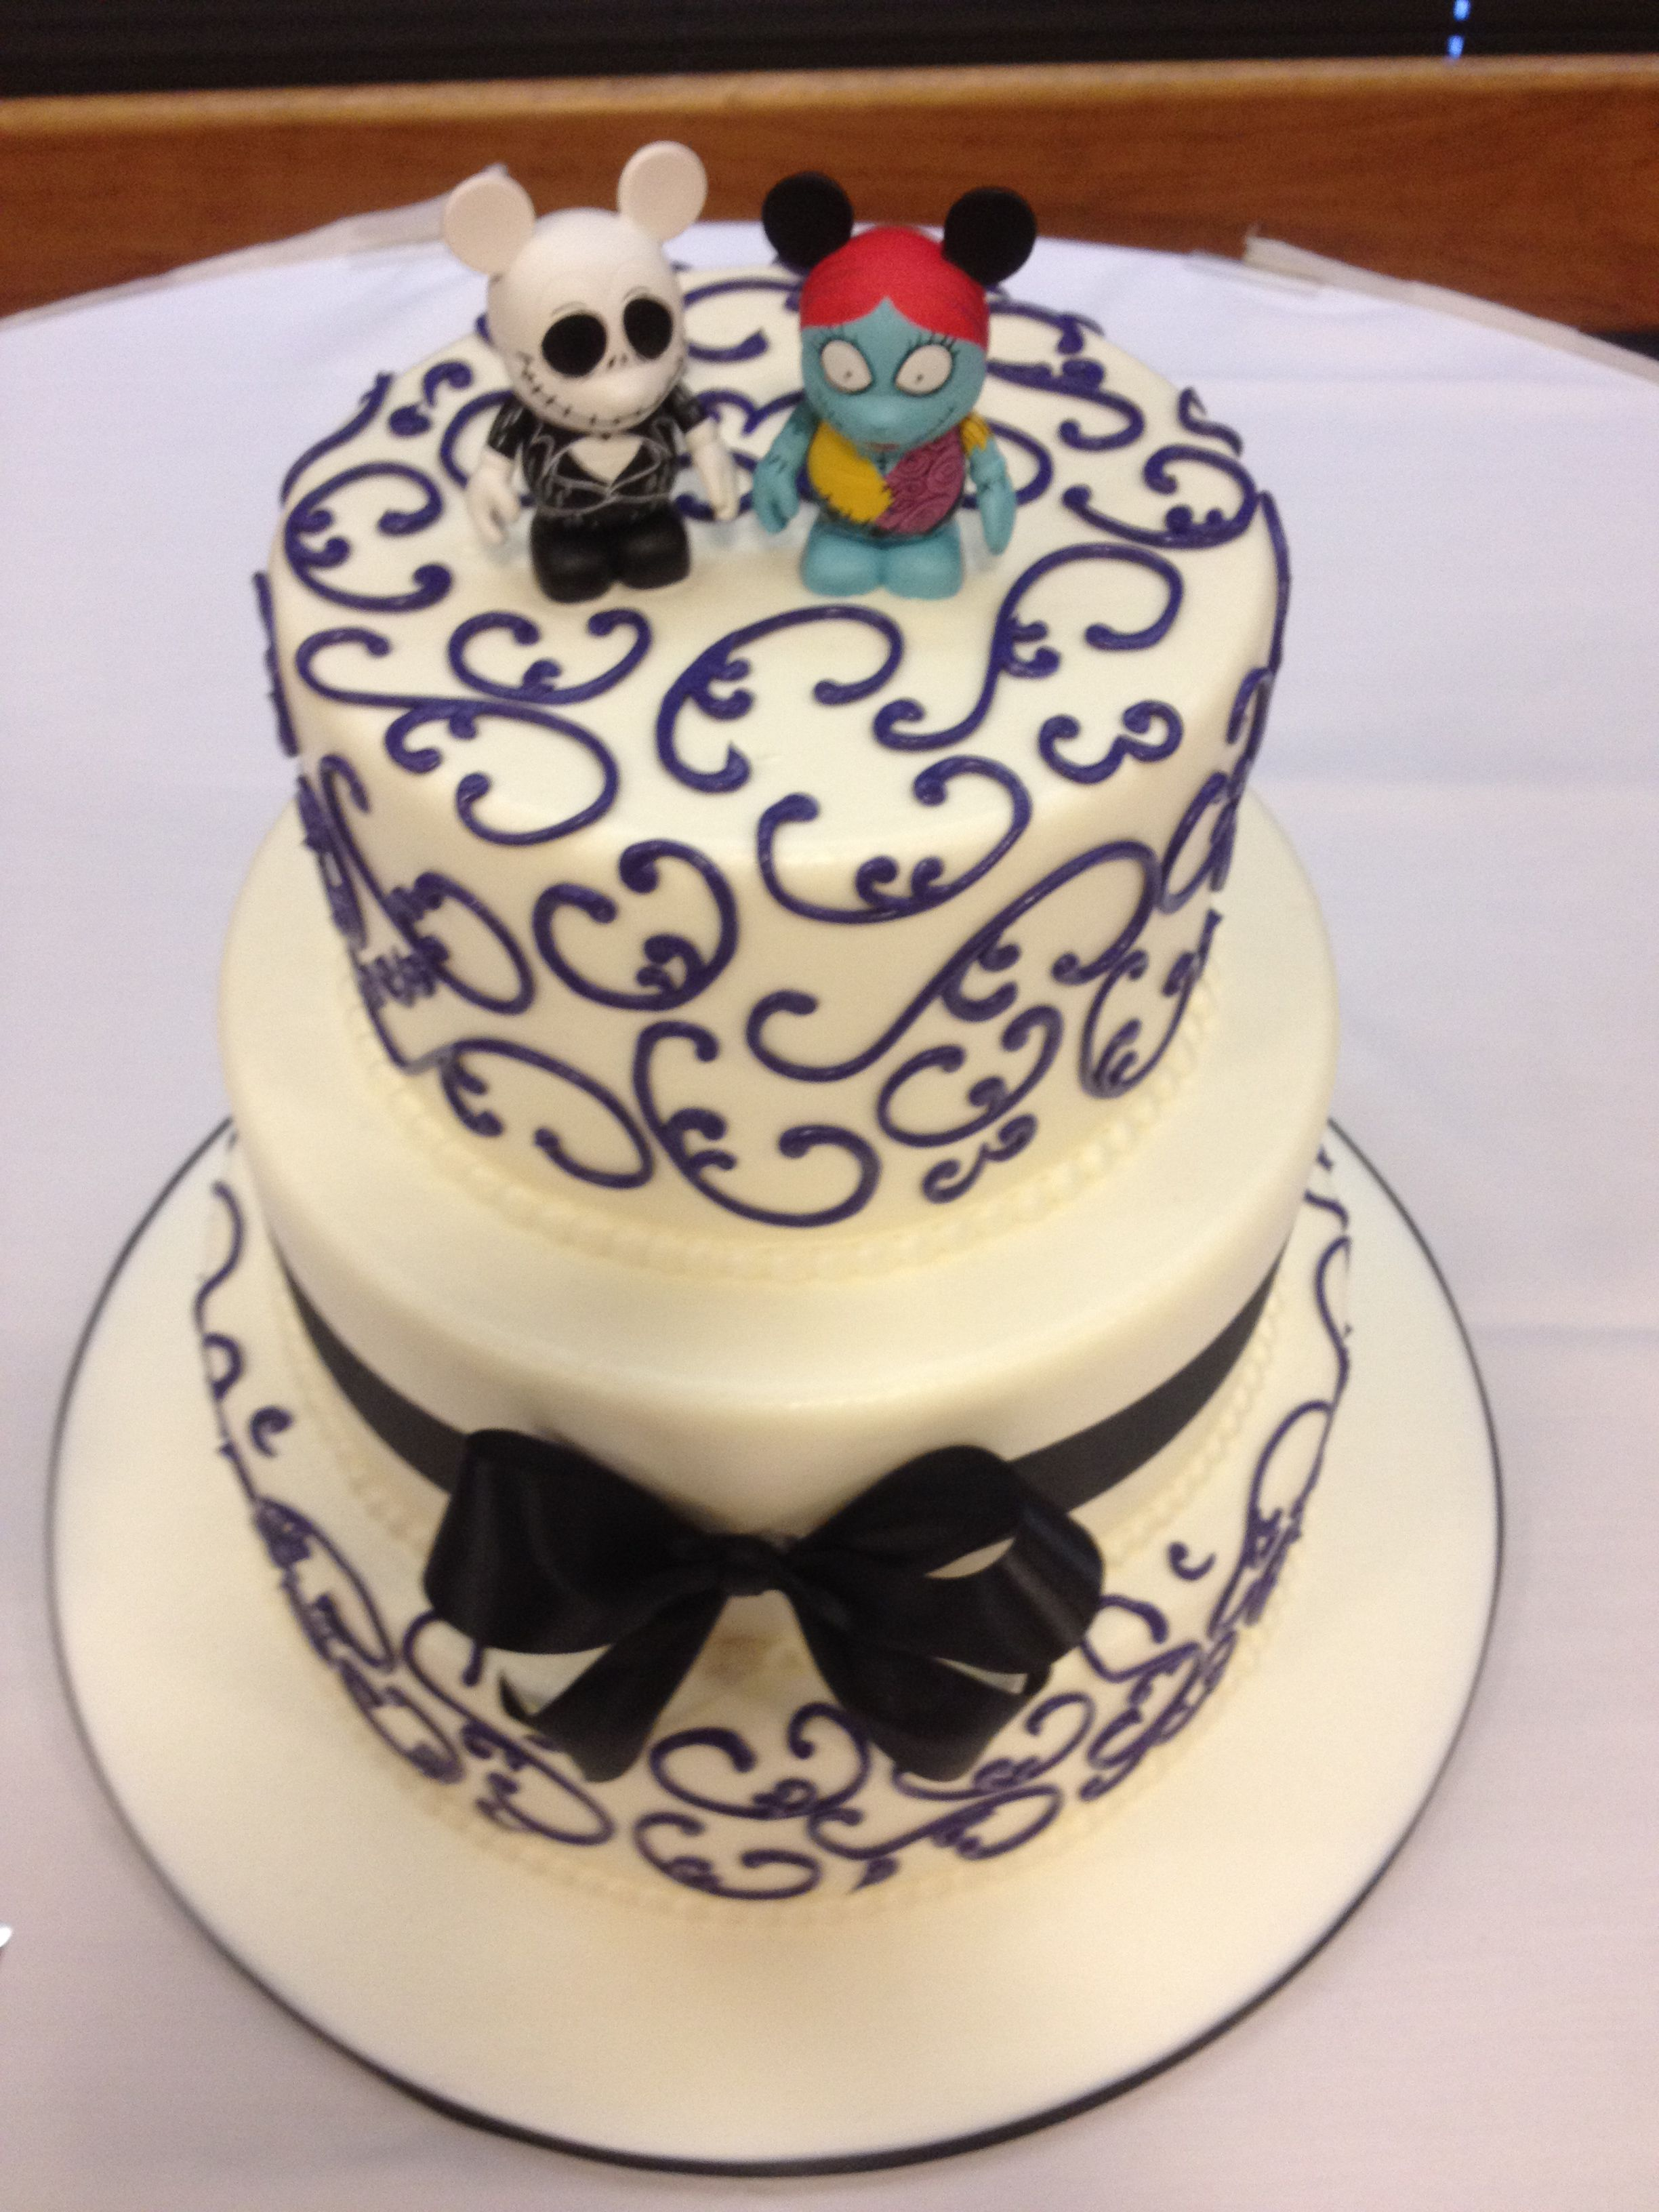 Fantastic Fall Wedding Cakes Big Wedding Cake Serving Set Flat Wedding Cake Recipe Wedding Cake Pictures Old Disney Wedding Cake Toppers OrangeAverage Wedding Cake Cost My Sister In Laws Wedding Cake With Jack And Sally Vinylmations As ..